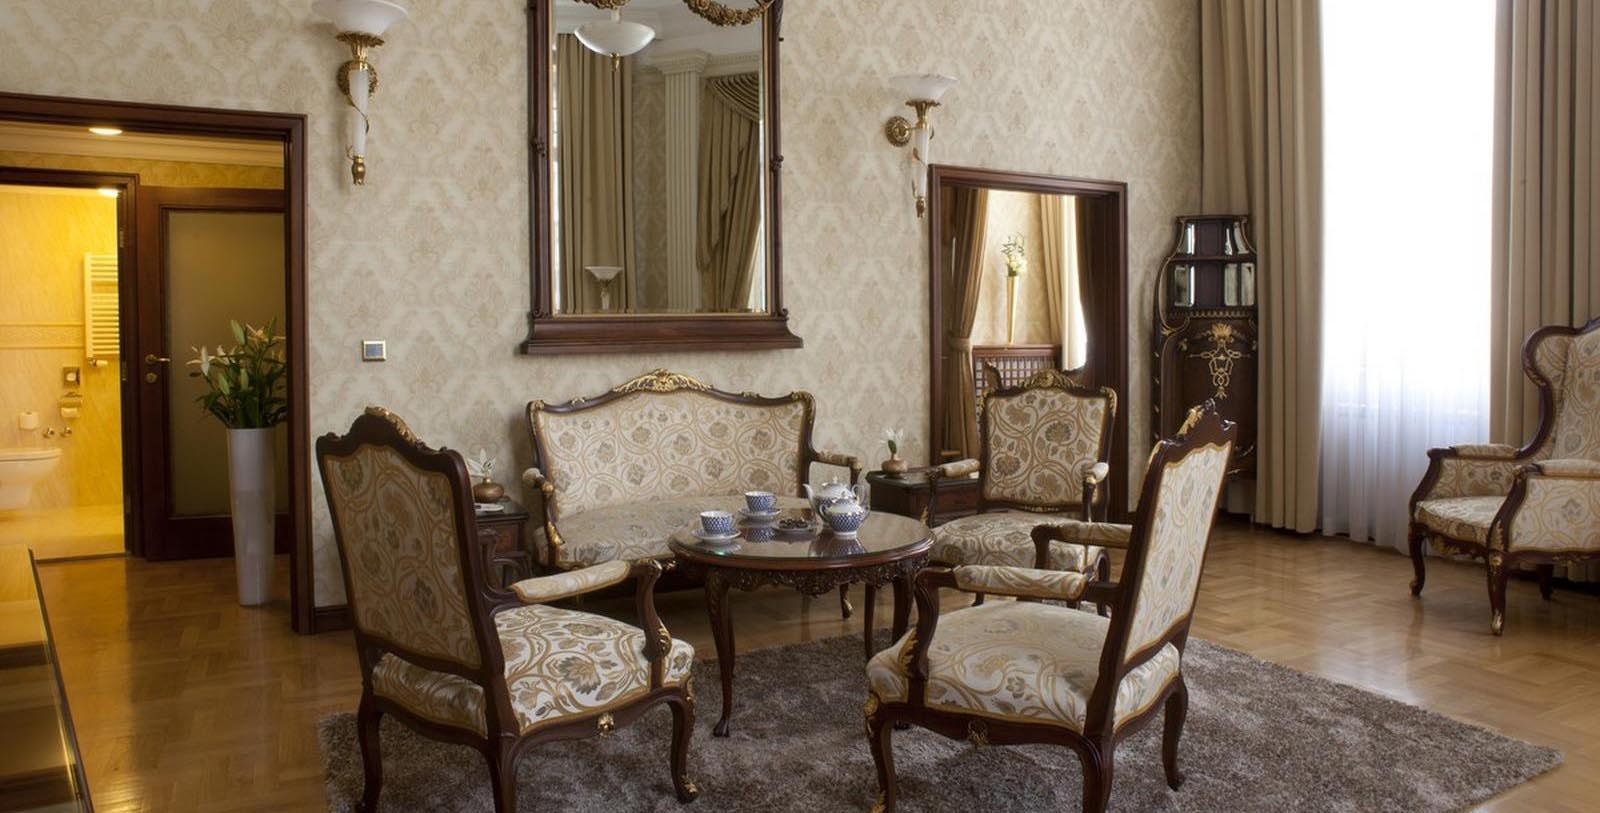 Image of Suite Living Room, Hotel Moskva, Belgrade, Sebia, 1908, Member of Historic Hotels Worldwide, Discover